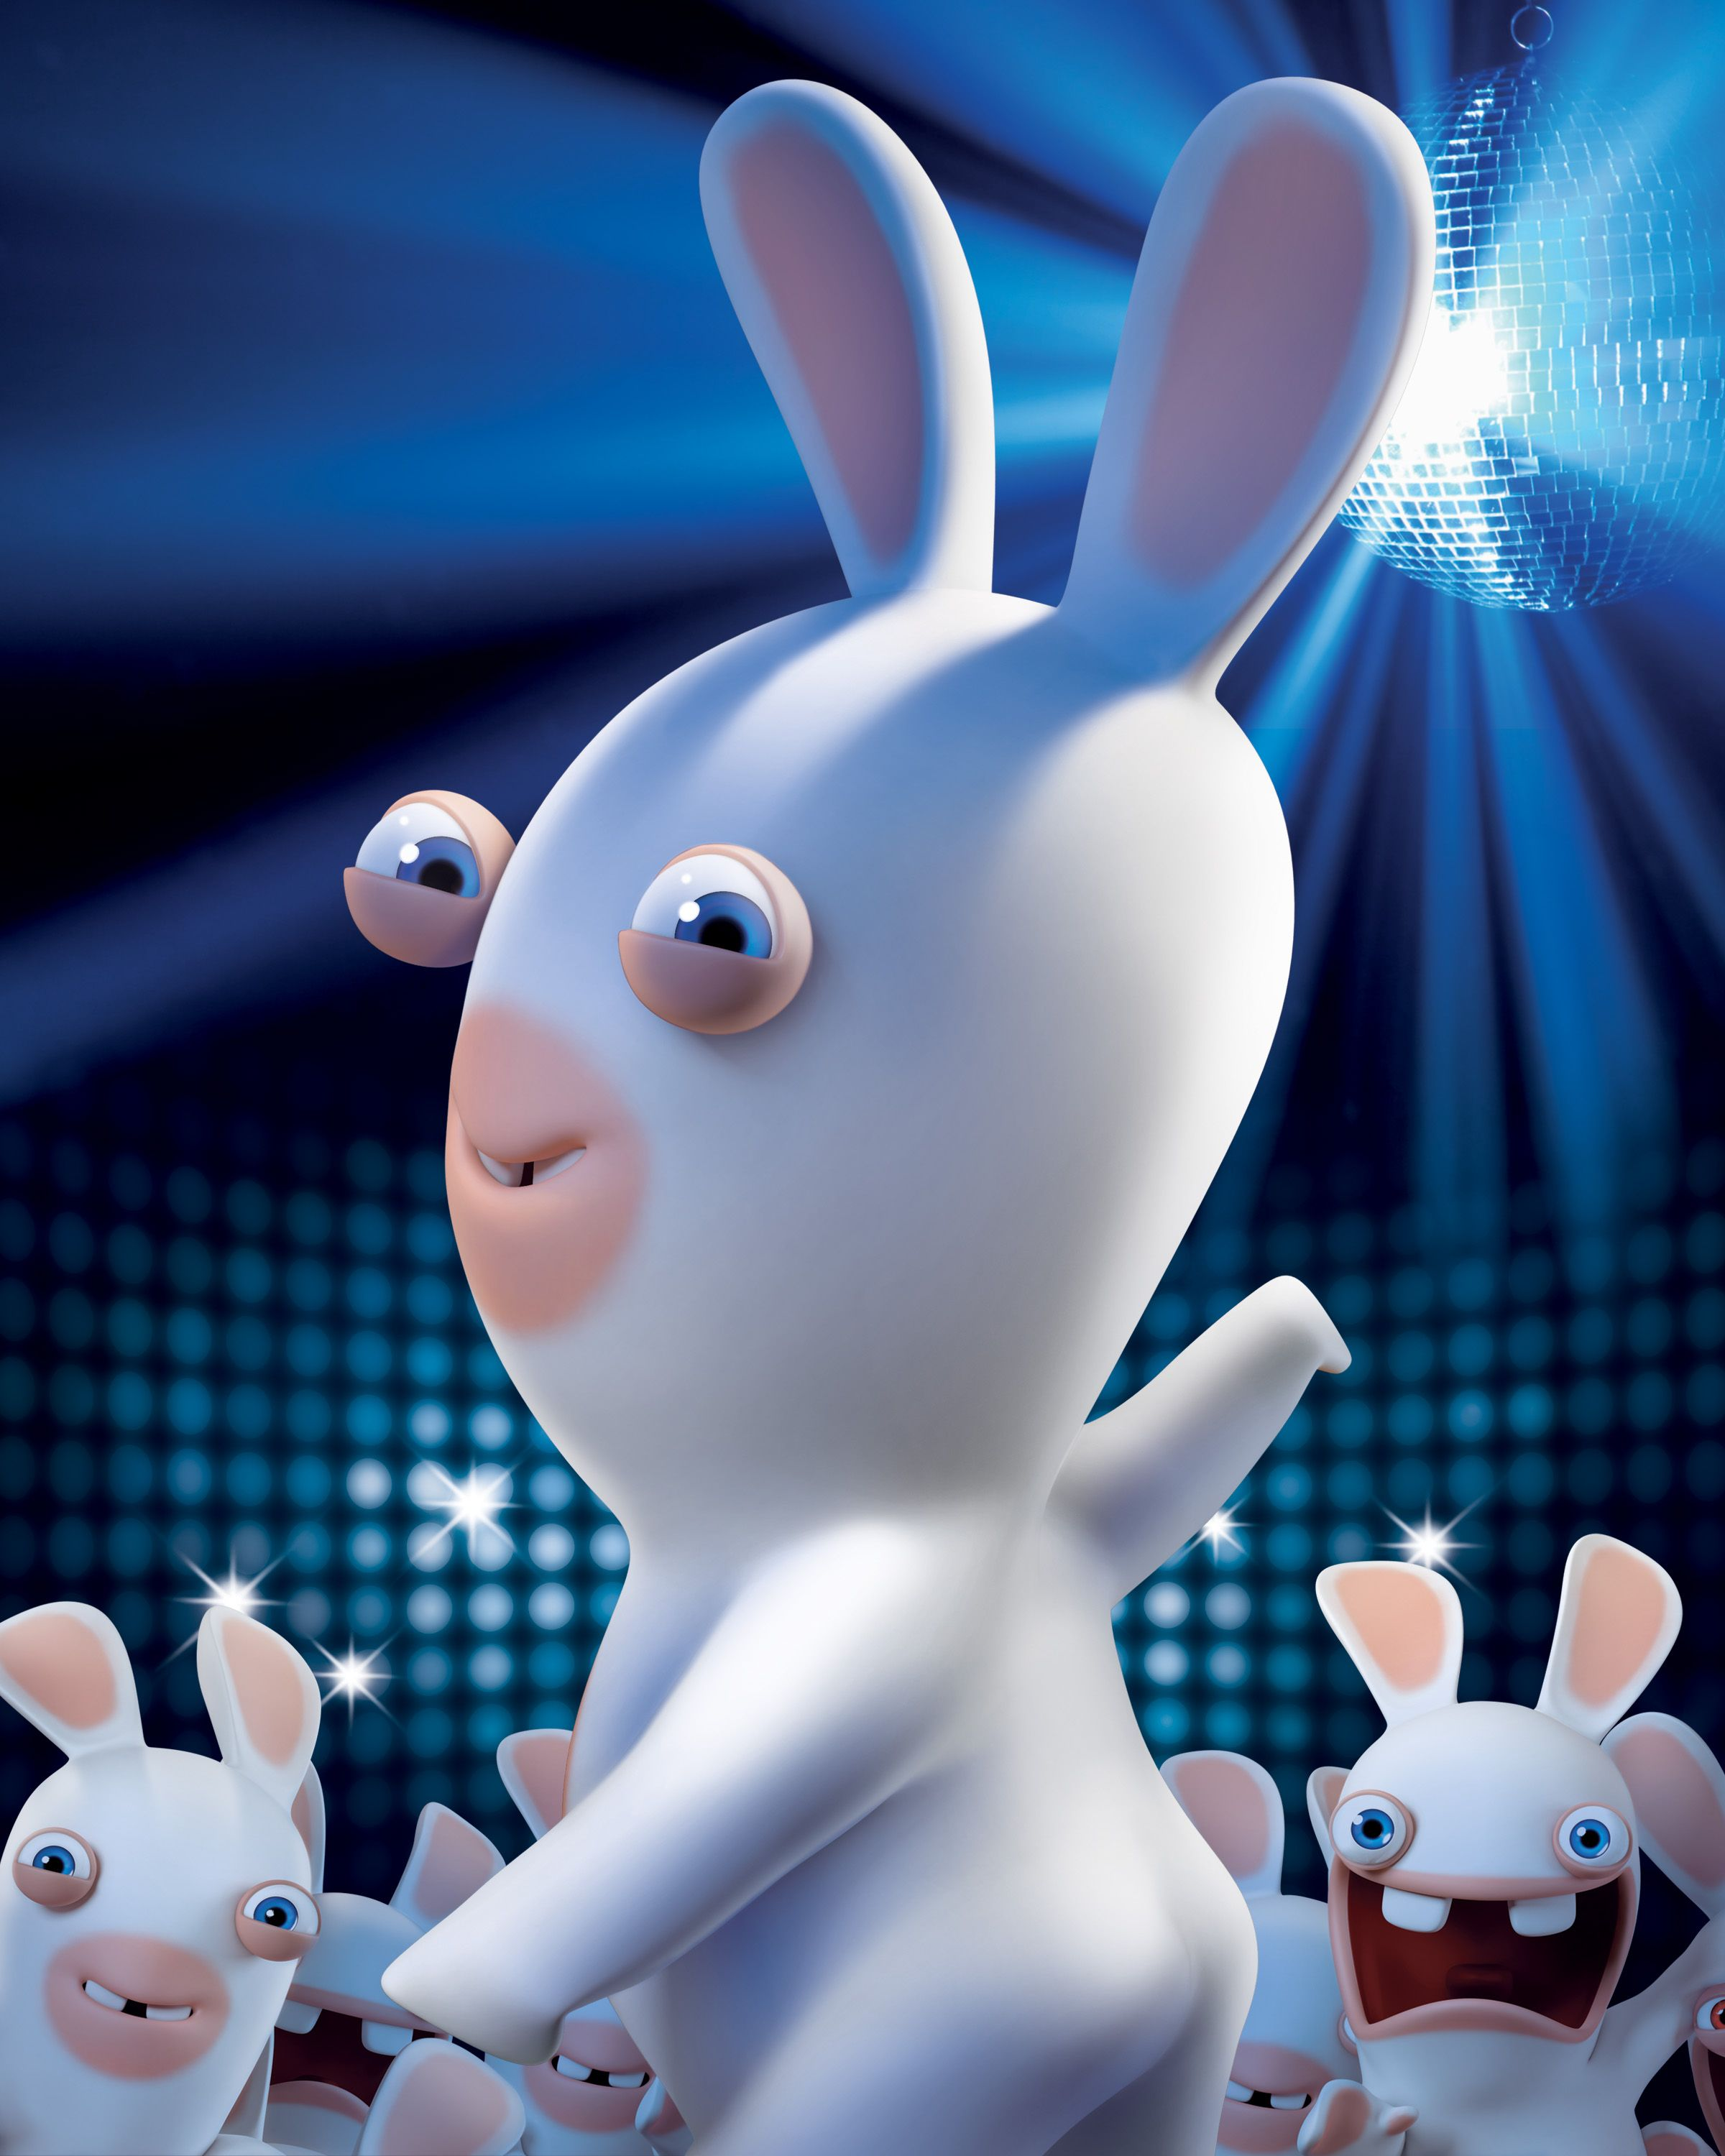 Raving rabbids spank a rabbit